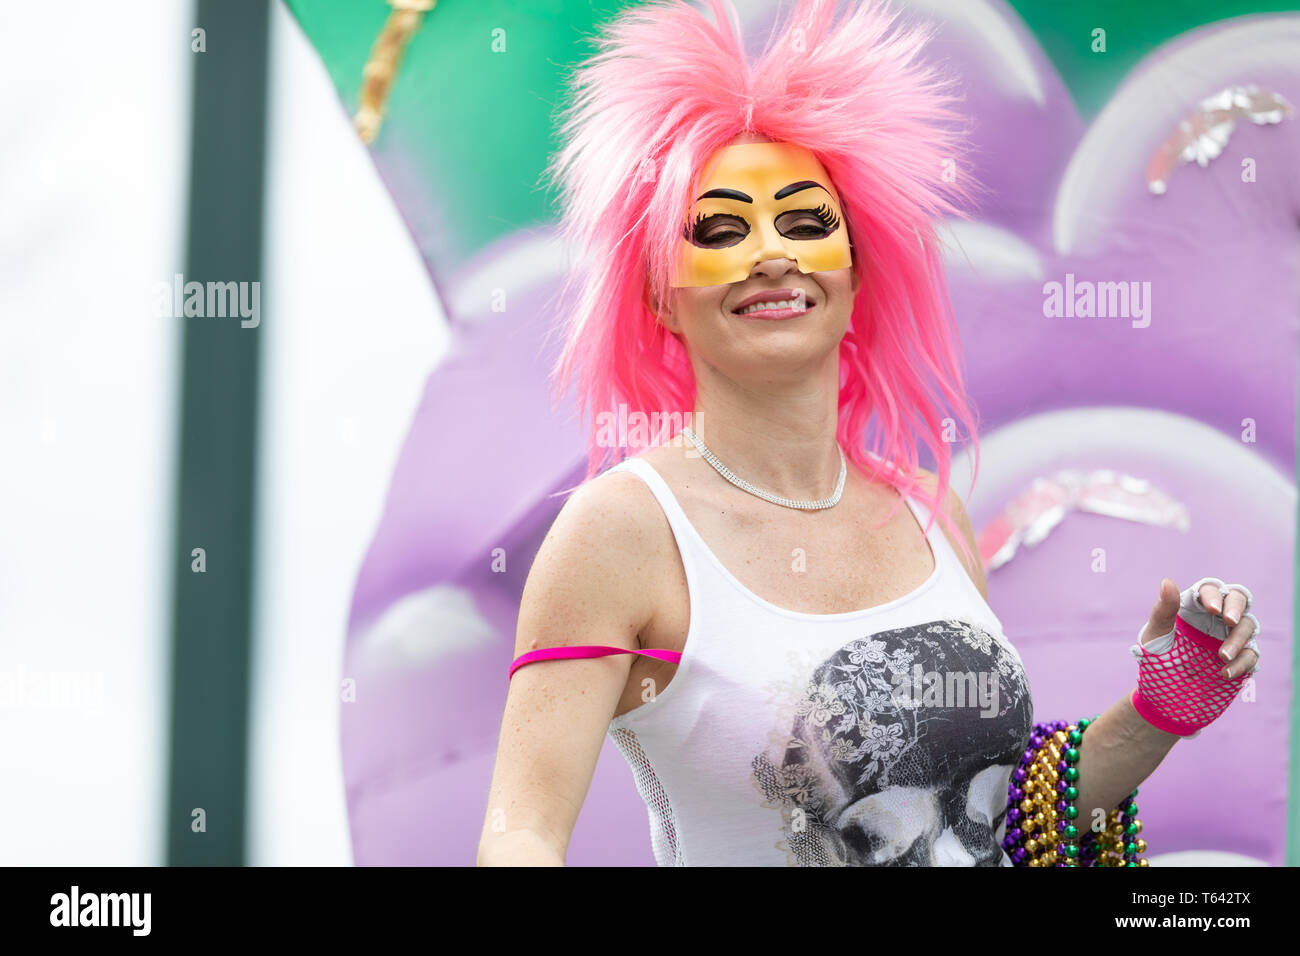 New Orleans, Louisiana, USA - February 23, 2019: Mardi Gras Parade, Woman wearing a pink wig and a face mask, smiling and holding beads necklace on he - Stock Image